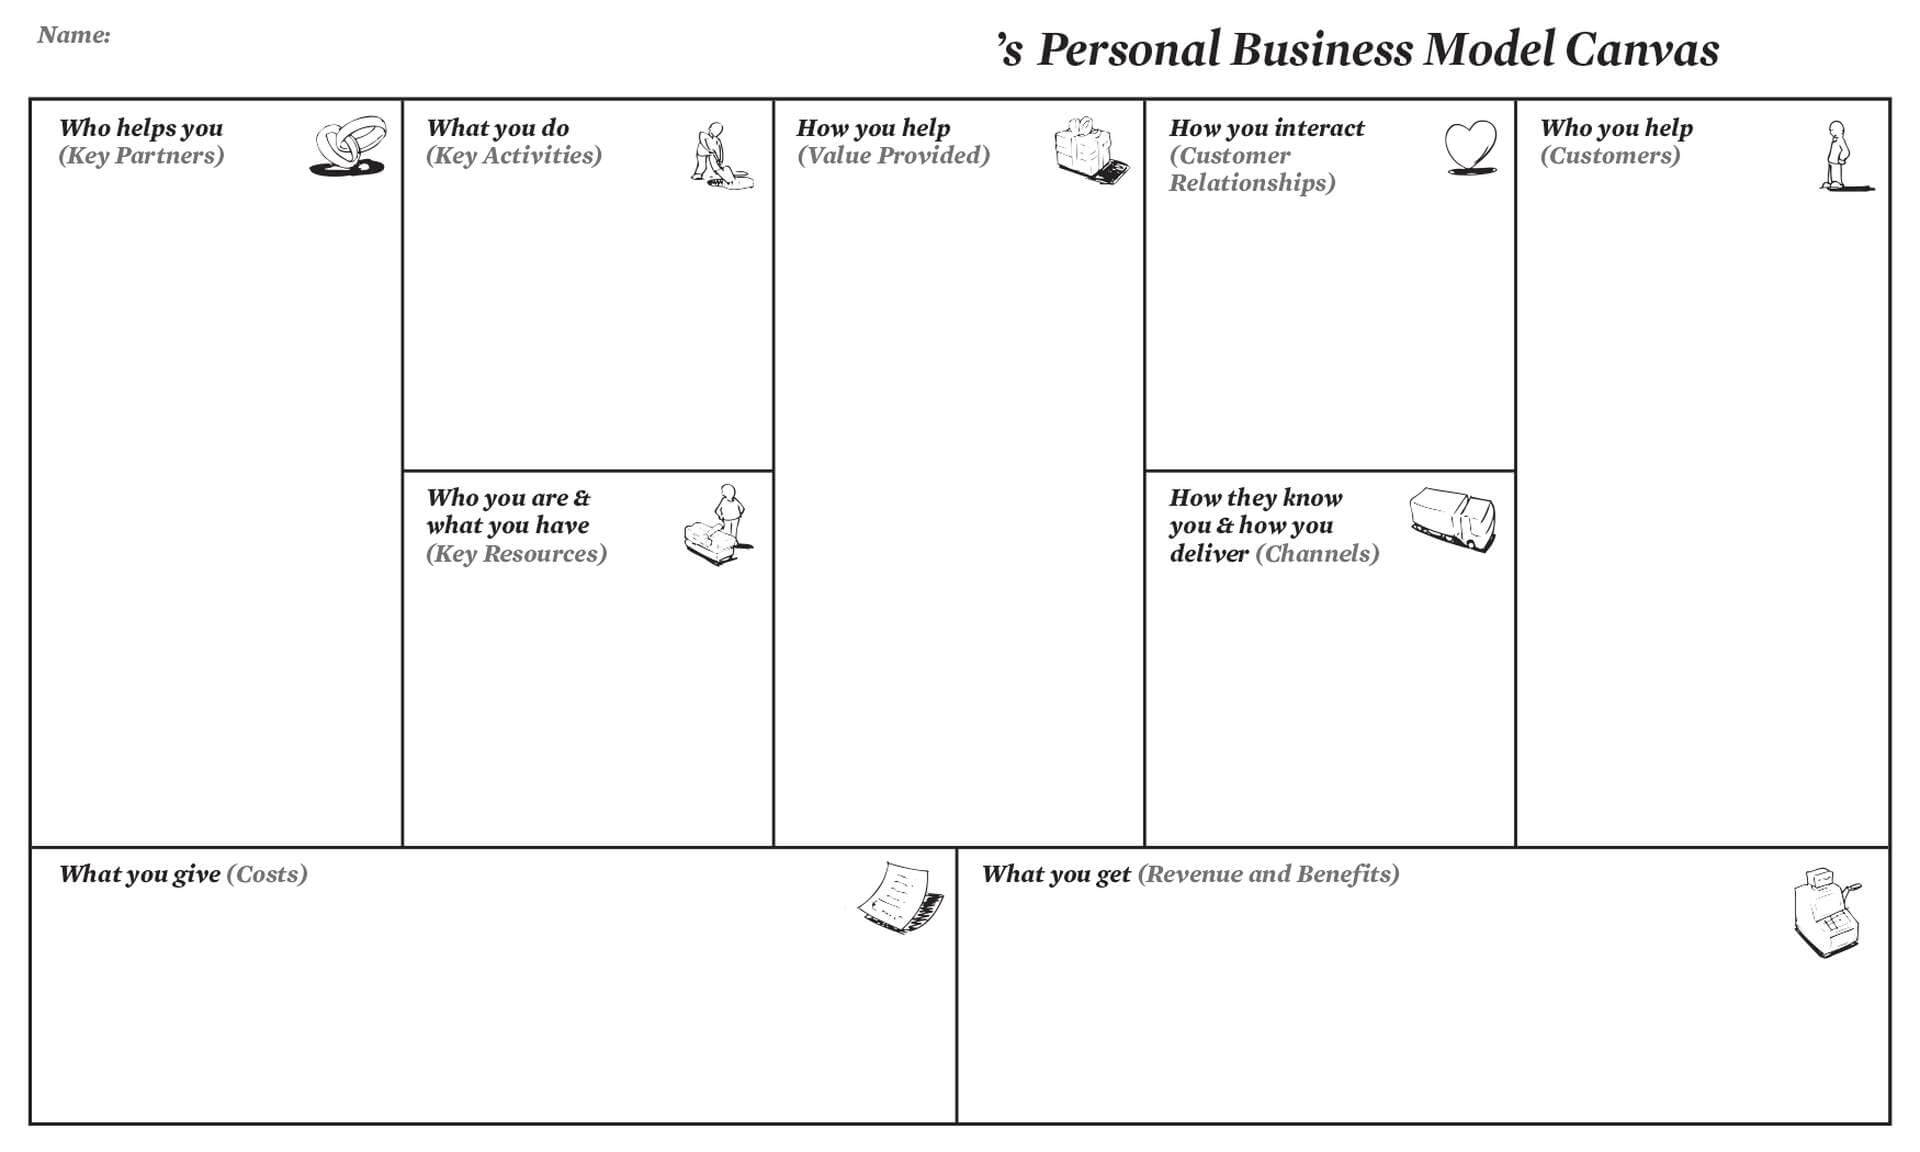 Business Model Canvas Template Word - Atlantaauctionco With Regard To Business Canvas Word Template